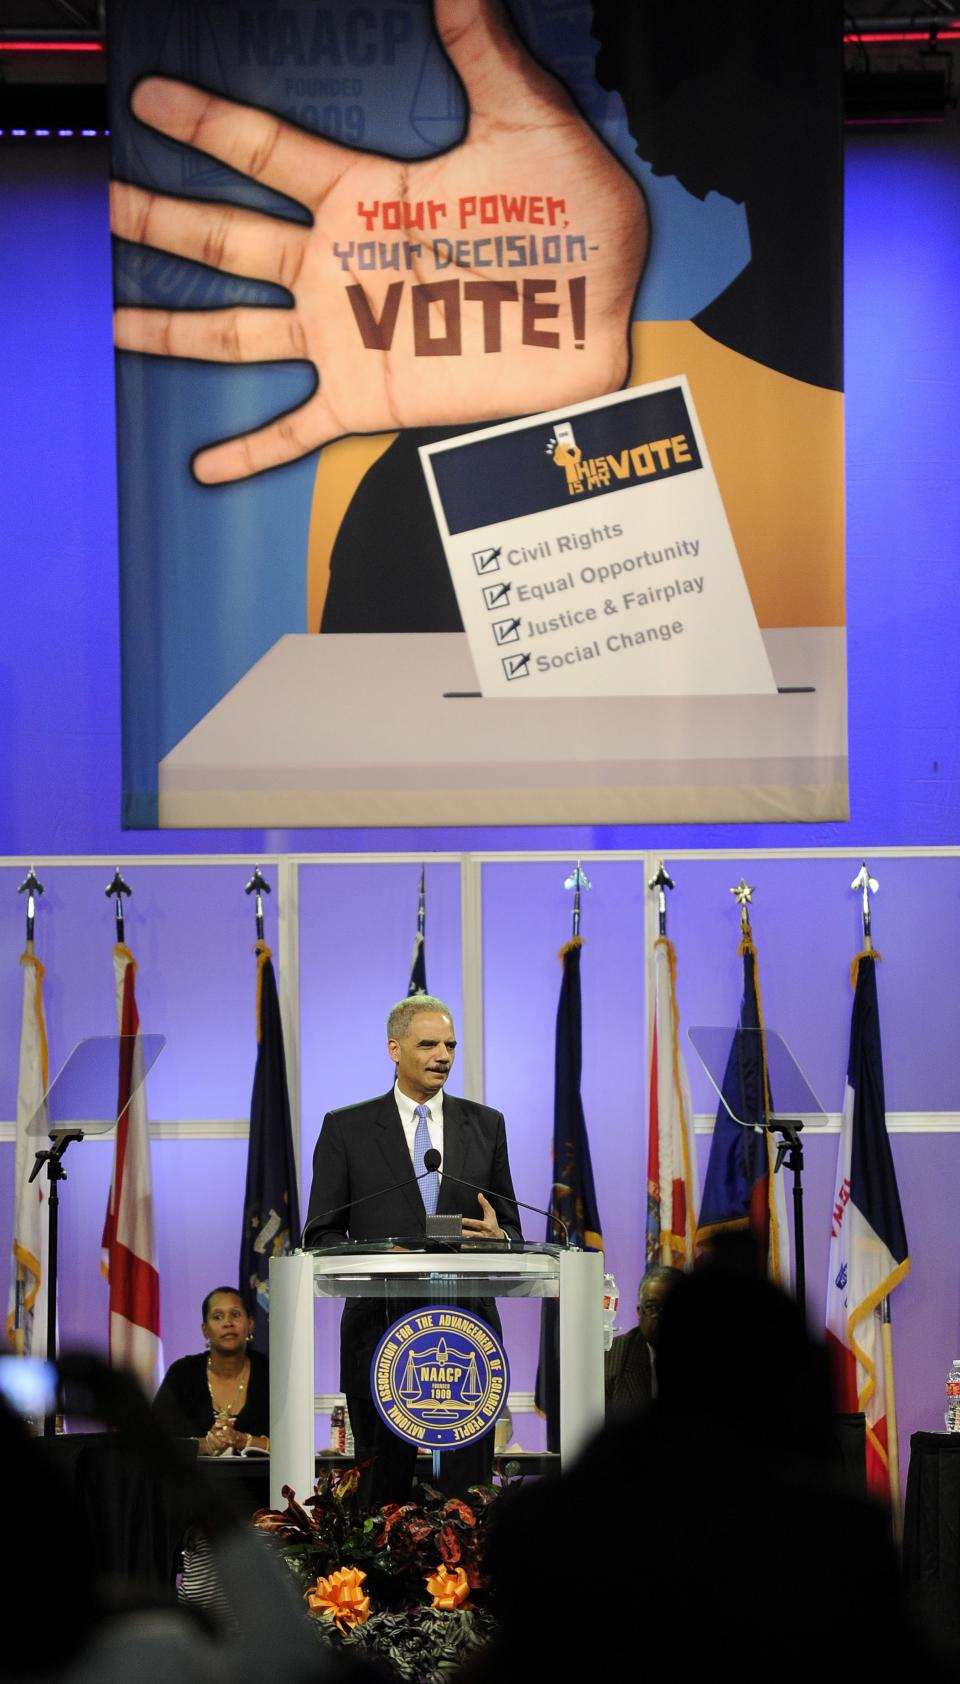 U.S. Attorney General Eric Holder speaks at the NAACP annual convention Tuesday, July 10, 2012, in Houston. Holder says he opposes a new photo ID requirement in Texas elections because it would be harmful to minority voters. (AP Photo/Pat Sullivan)